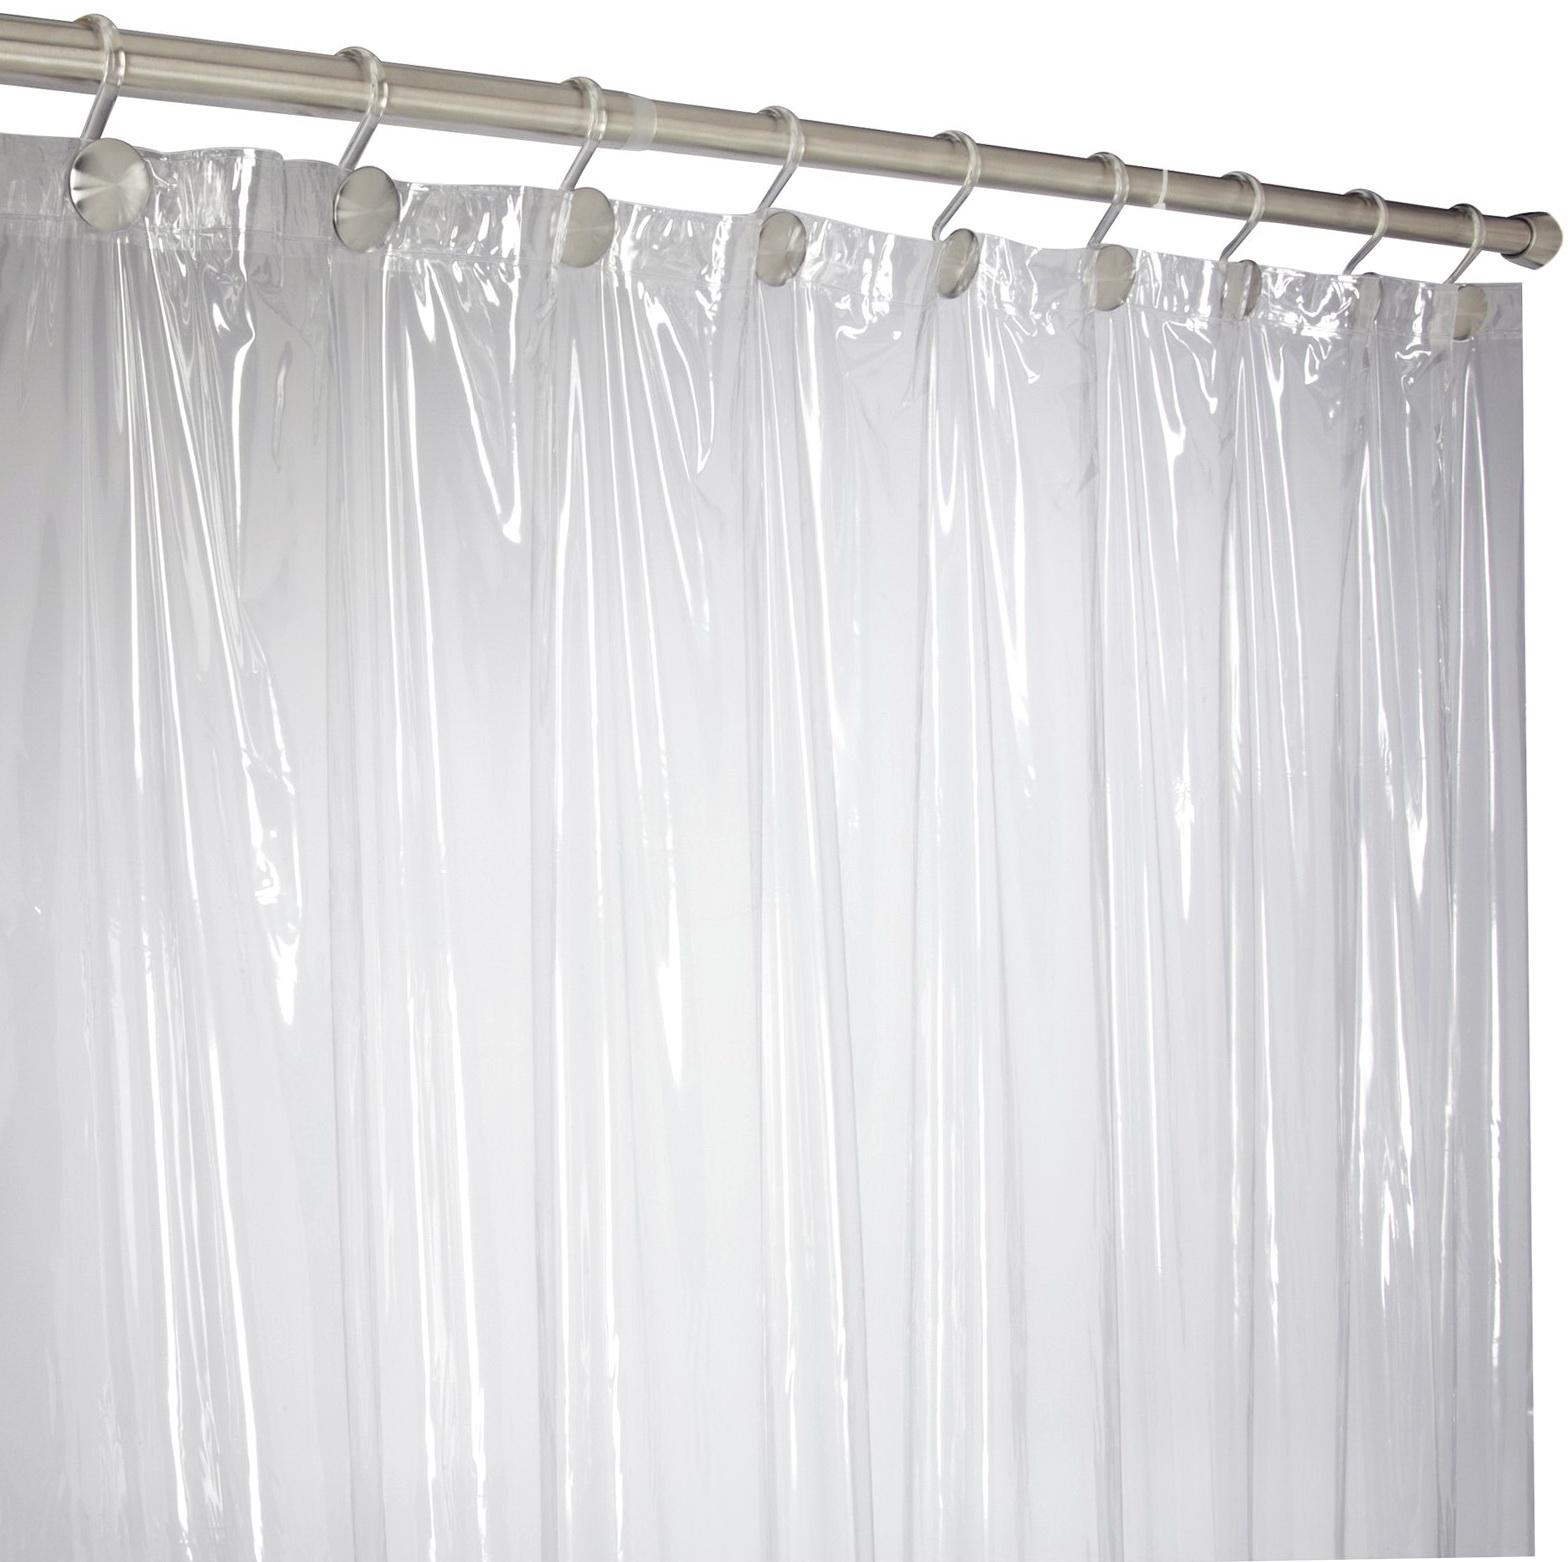 shower curtain liners 75 inches long home design ideas